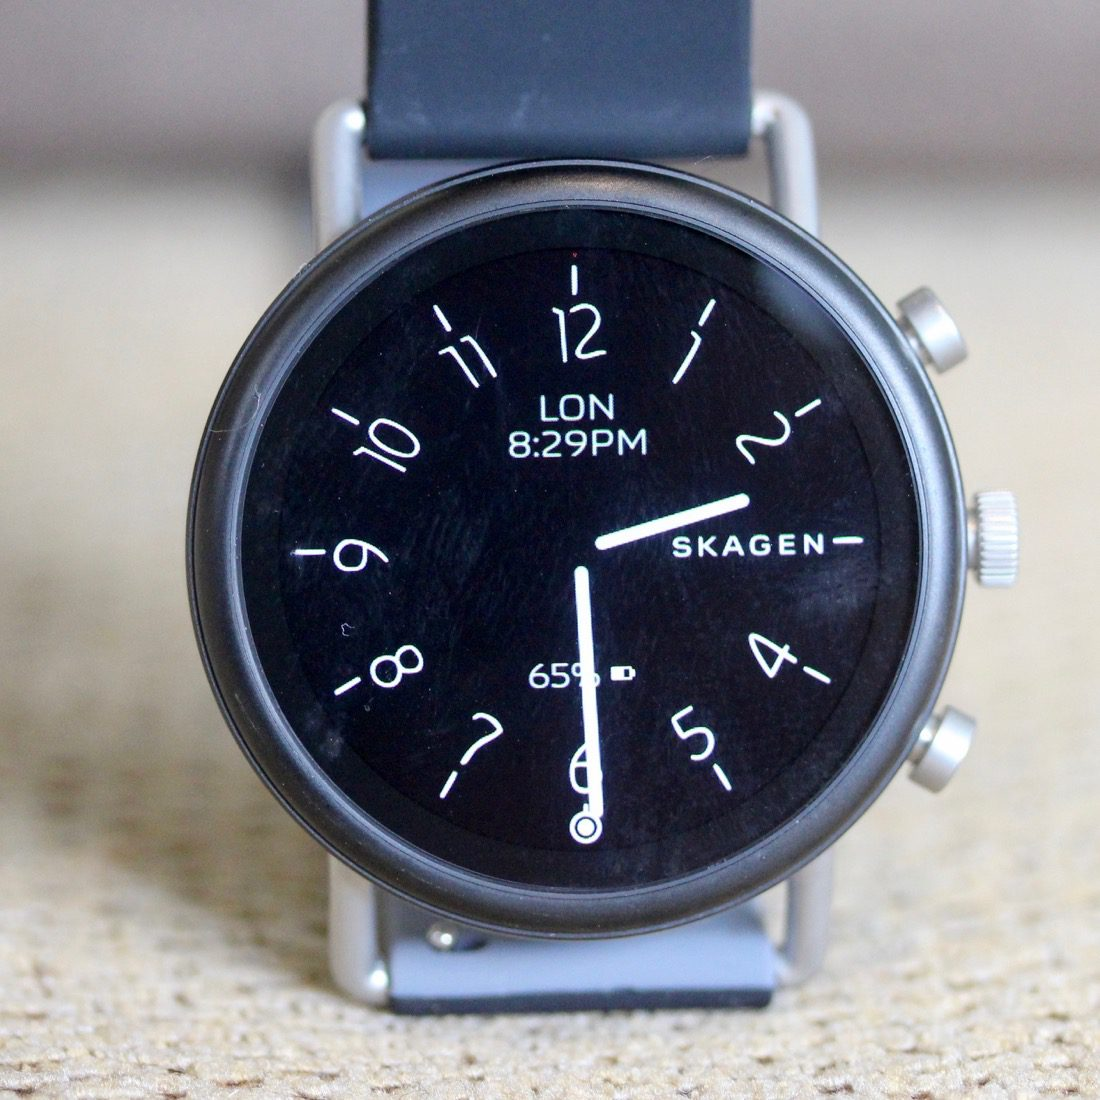 Getting smart with the Skagen Falster 2 Smartwatch